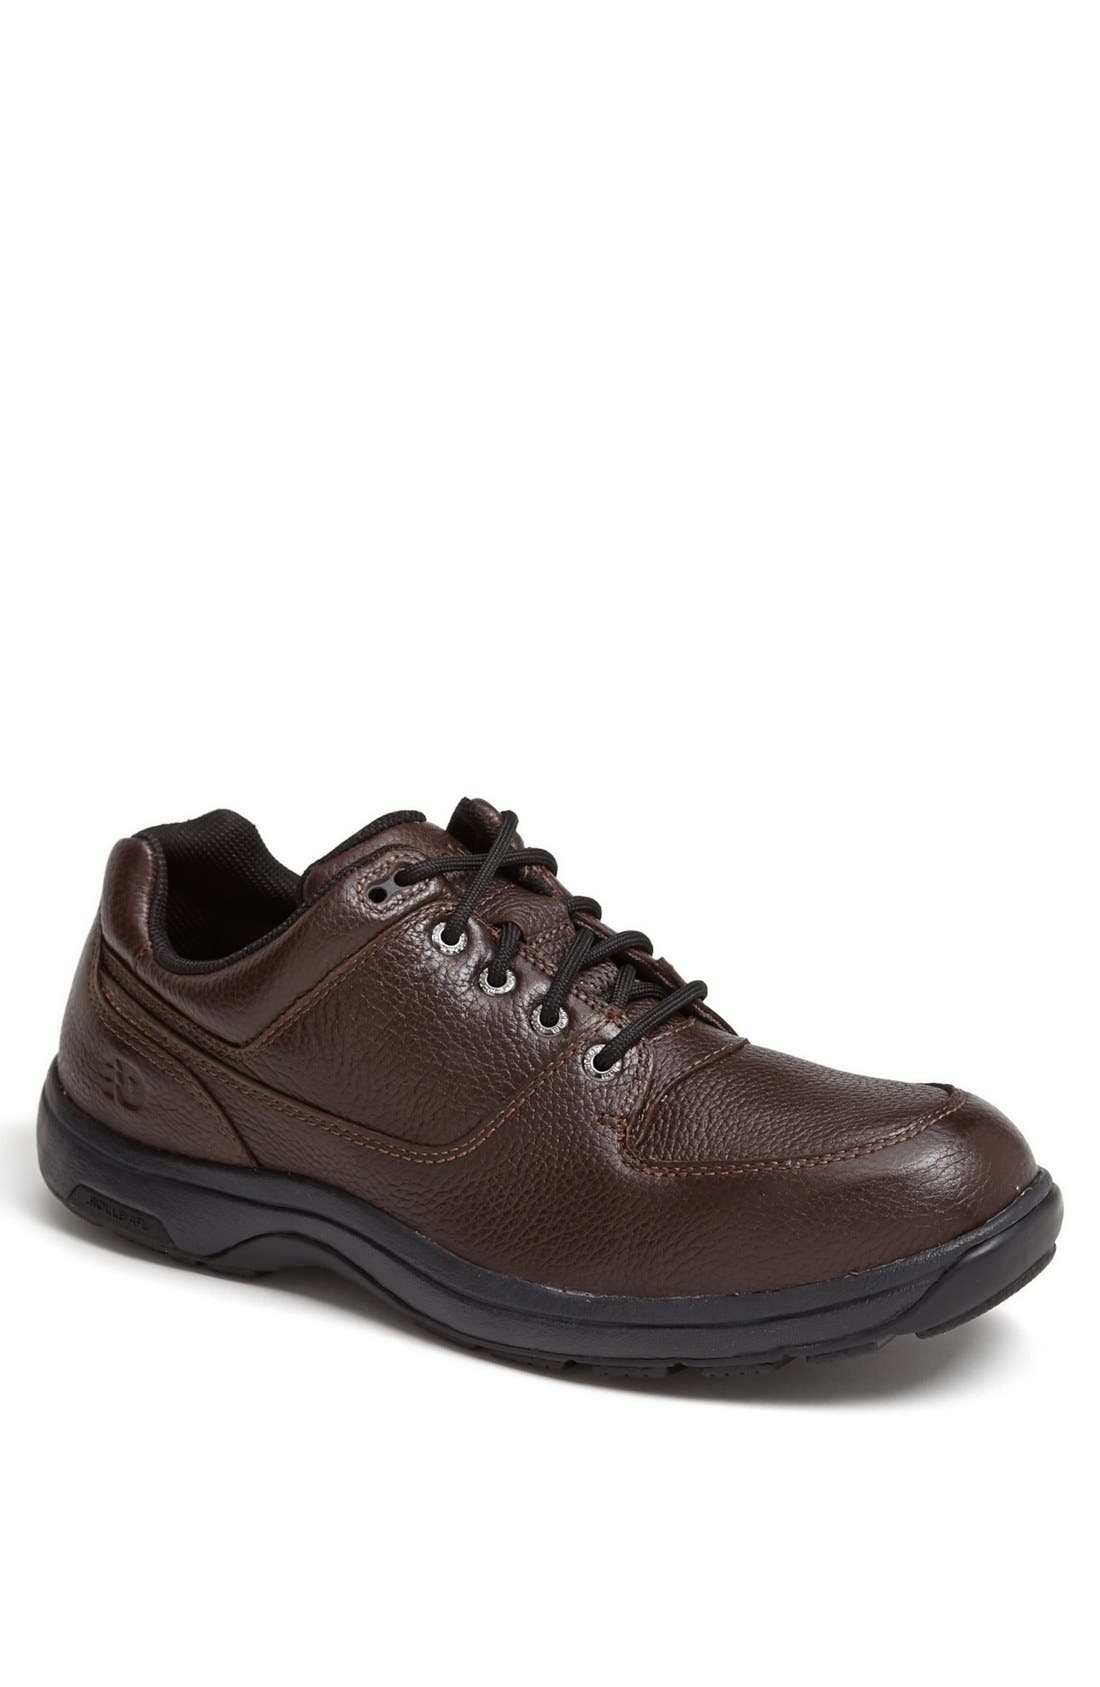 'Windsor' Sneaker,                         Main,                         color, 200